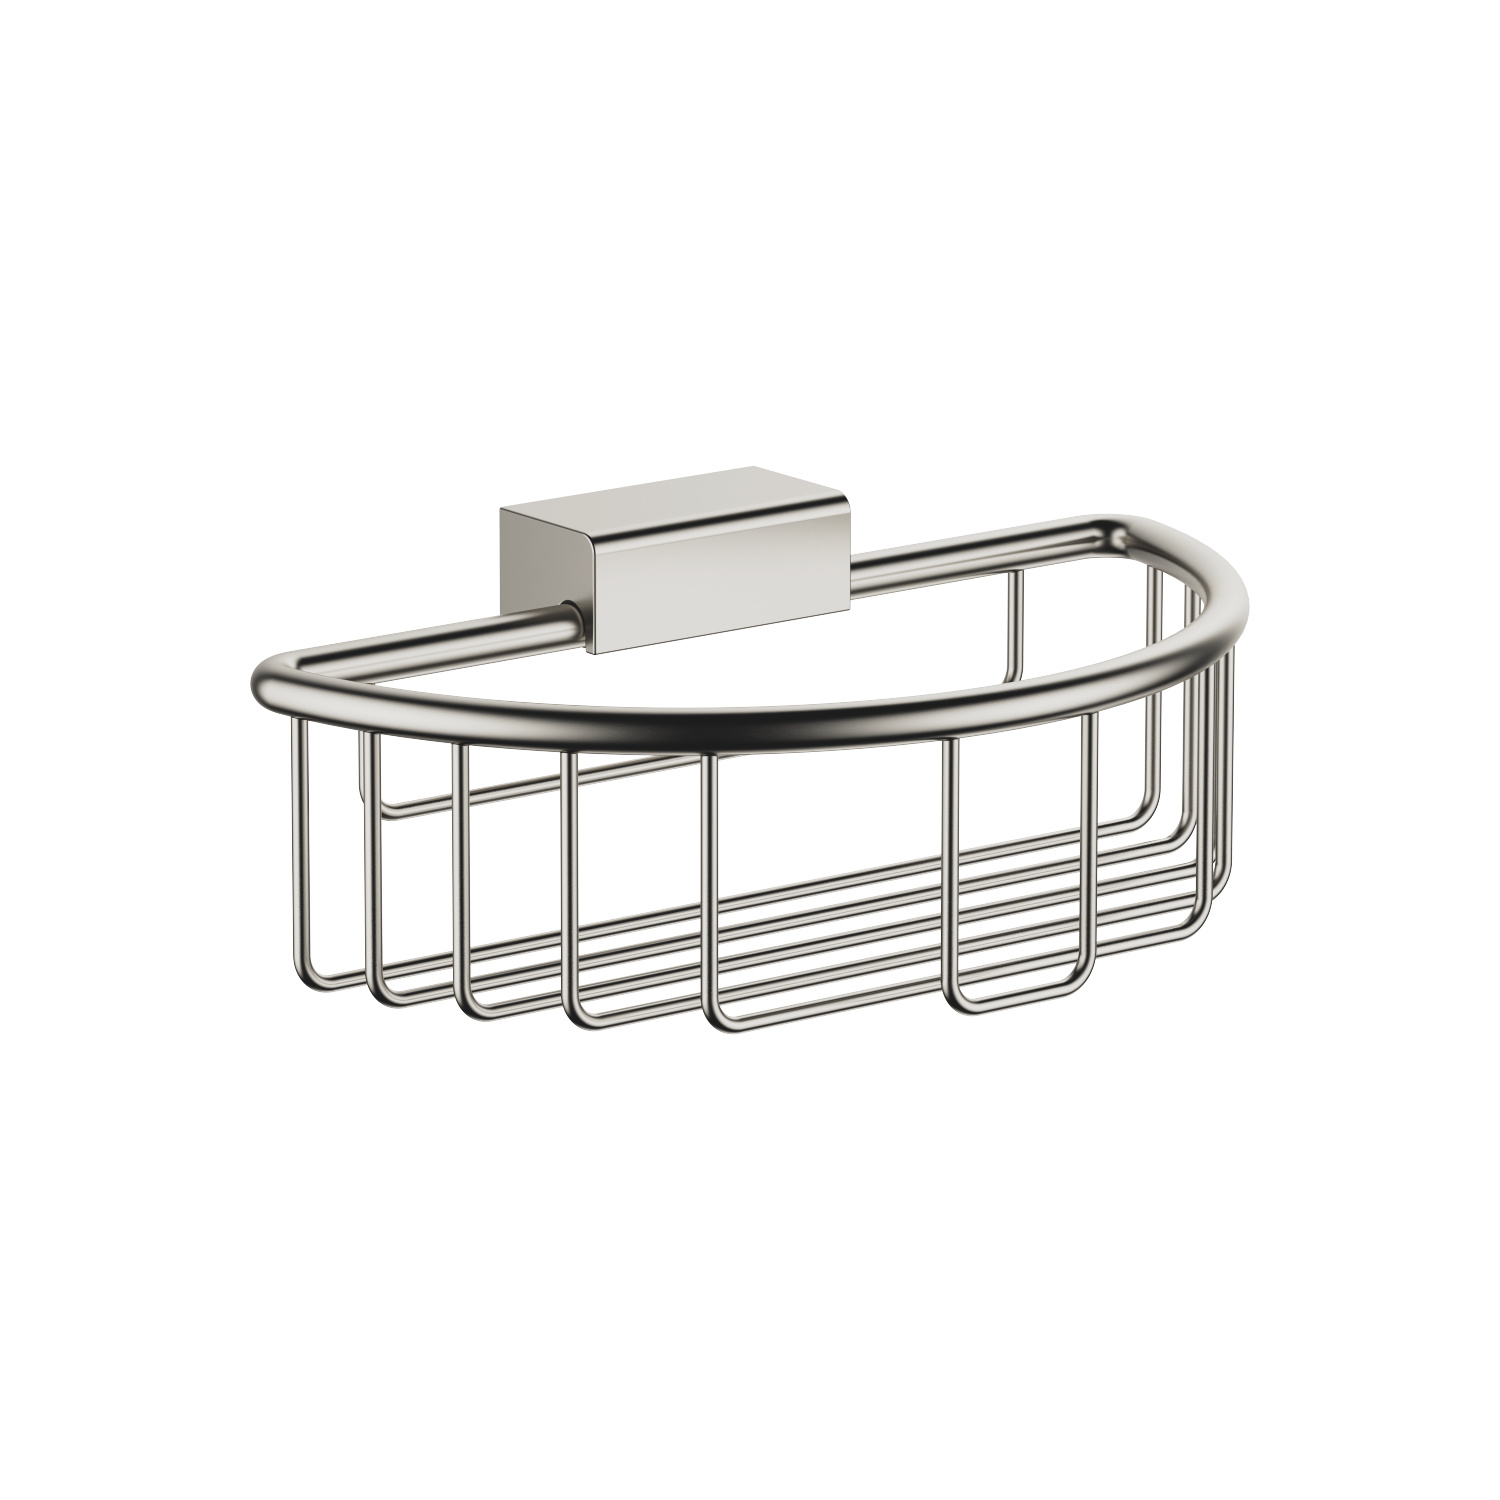 Shower basket for wall mounting - platinum matt